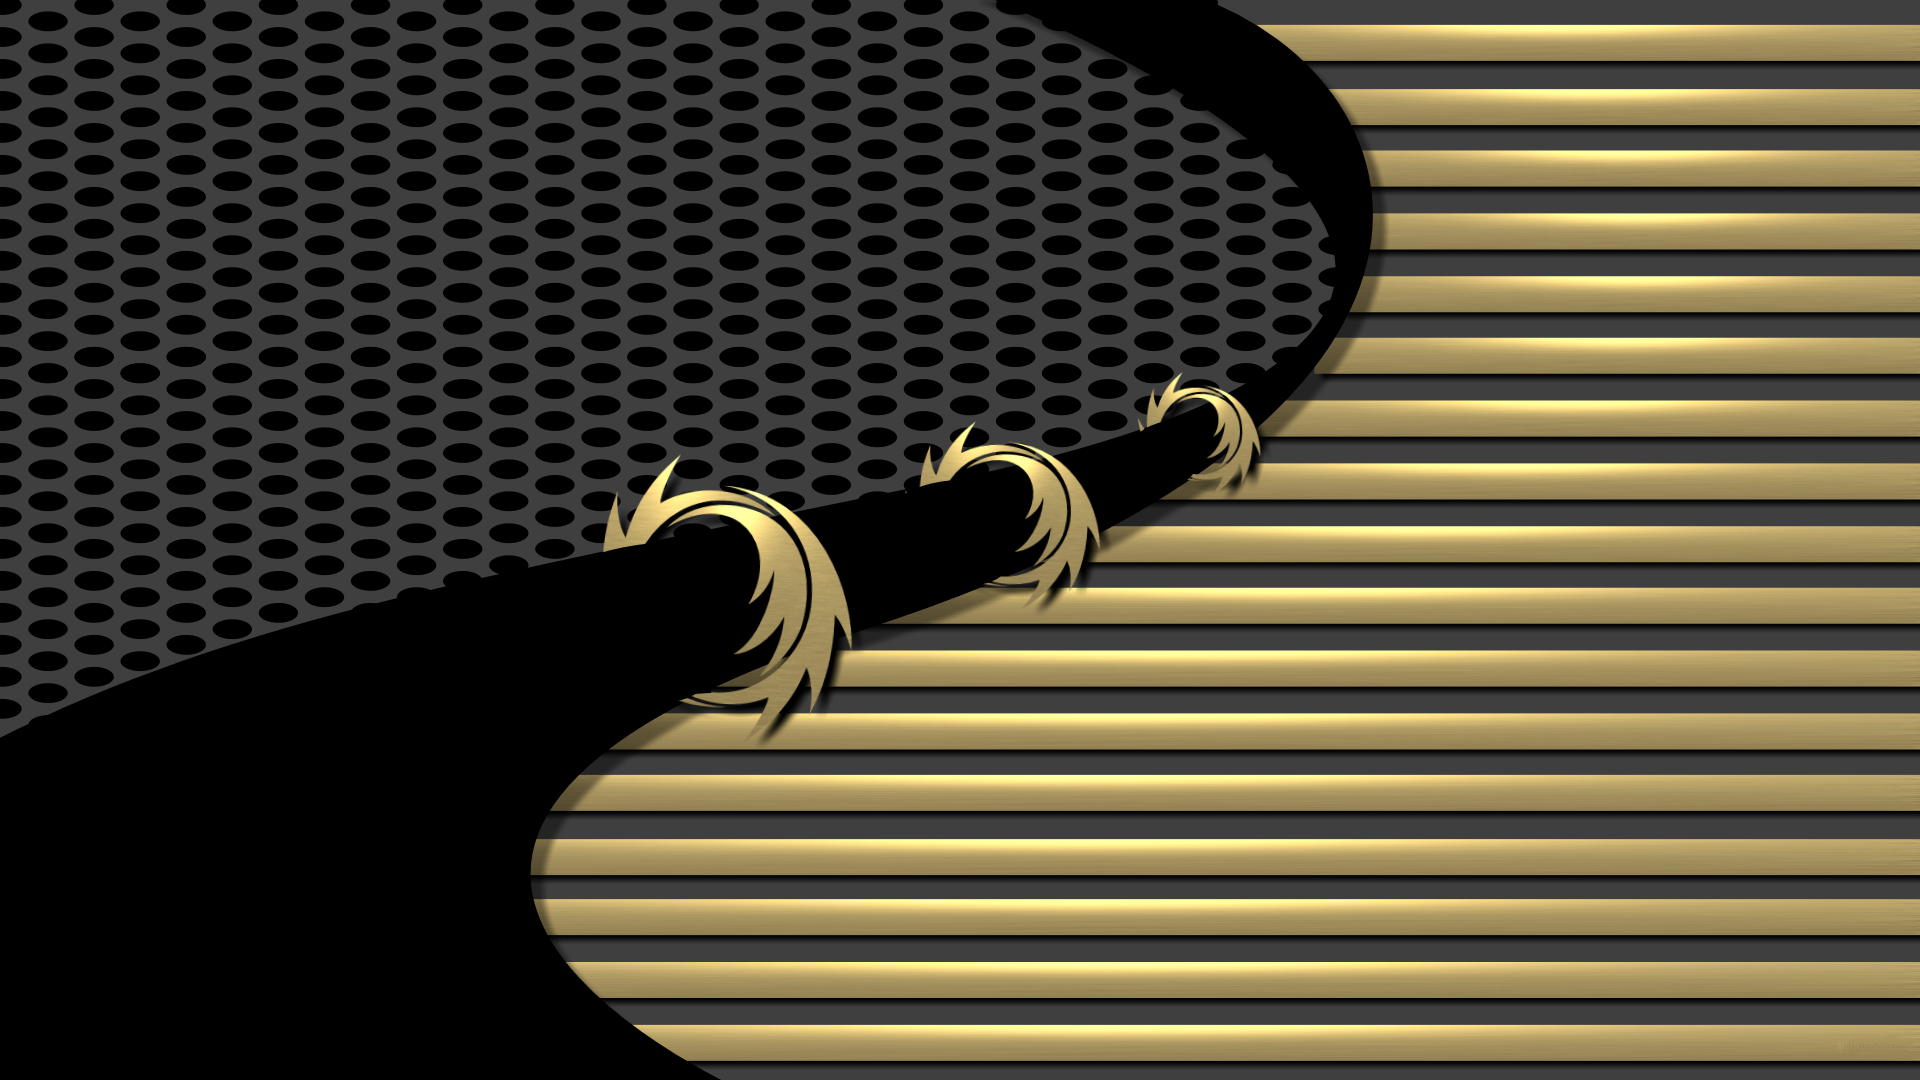 Black And Gold Wallpaper Images